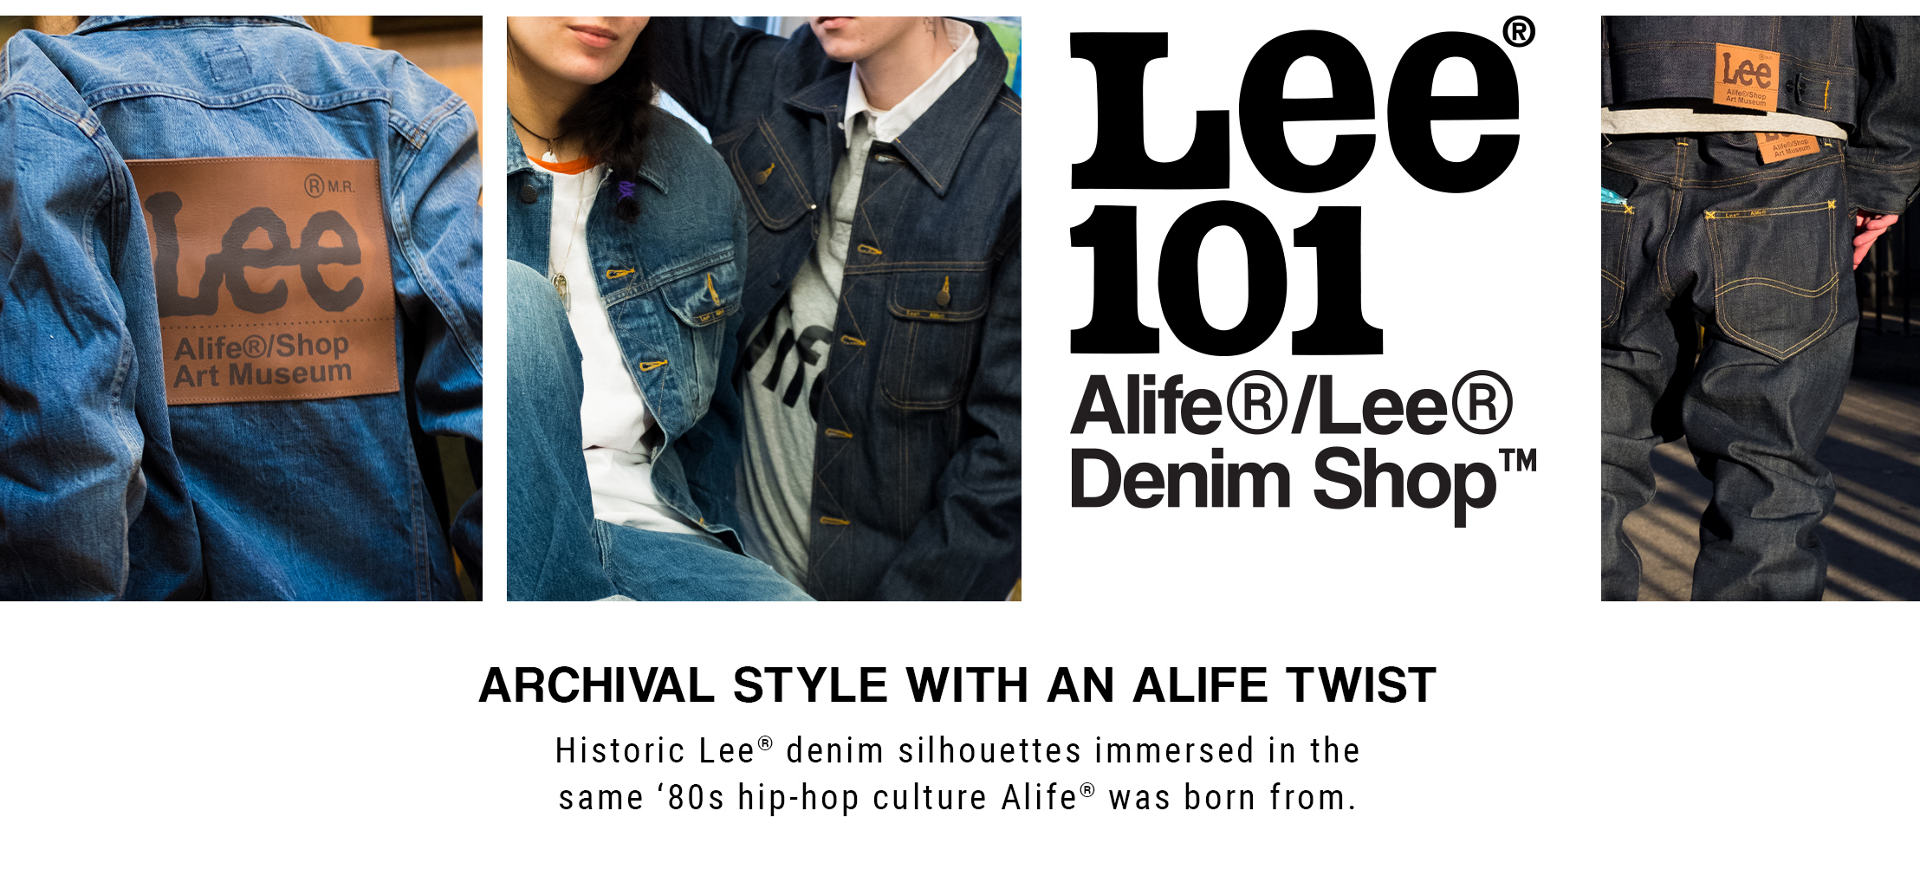 Shop the Lee101 x Alife Denim Collection Now